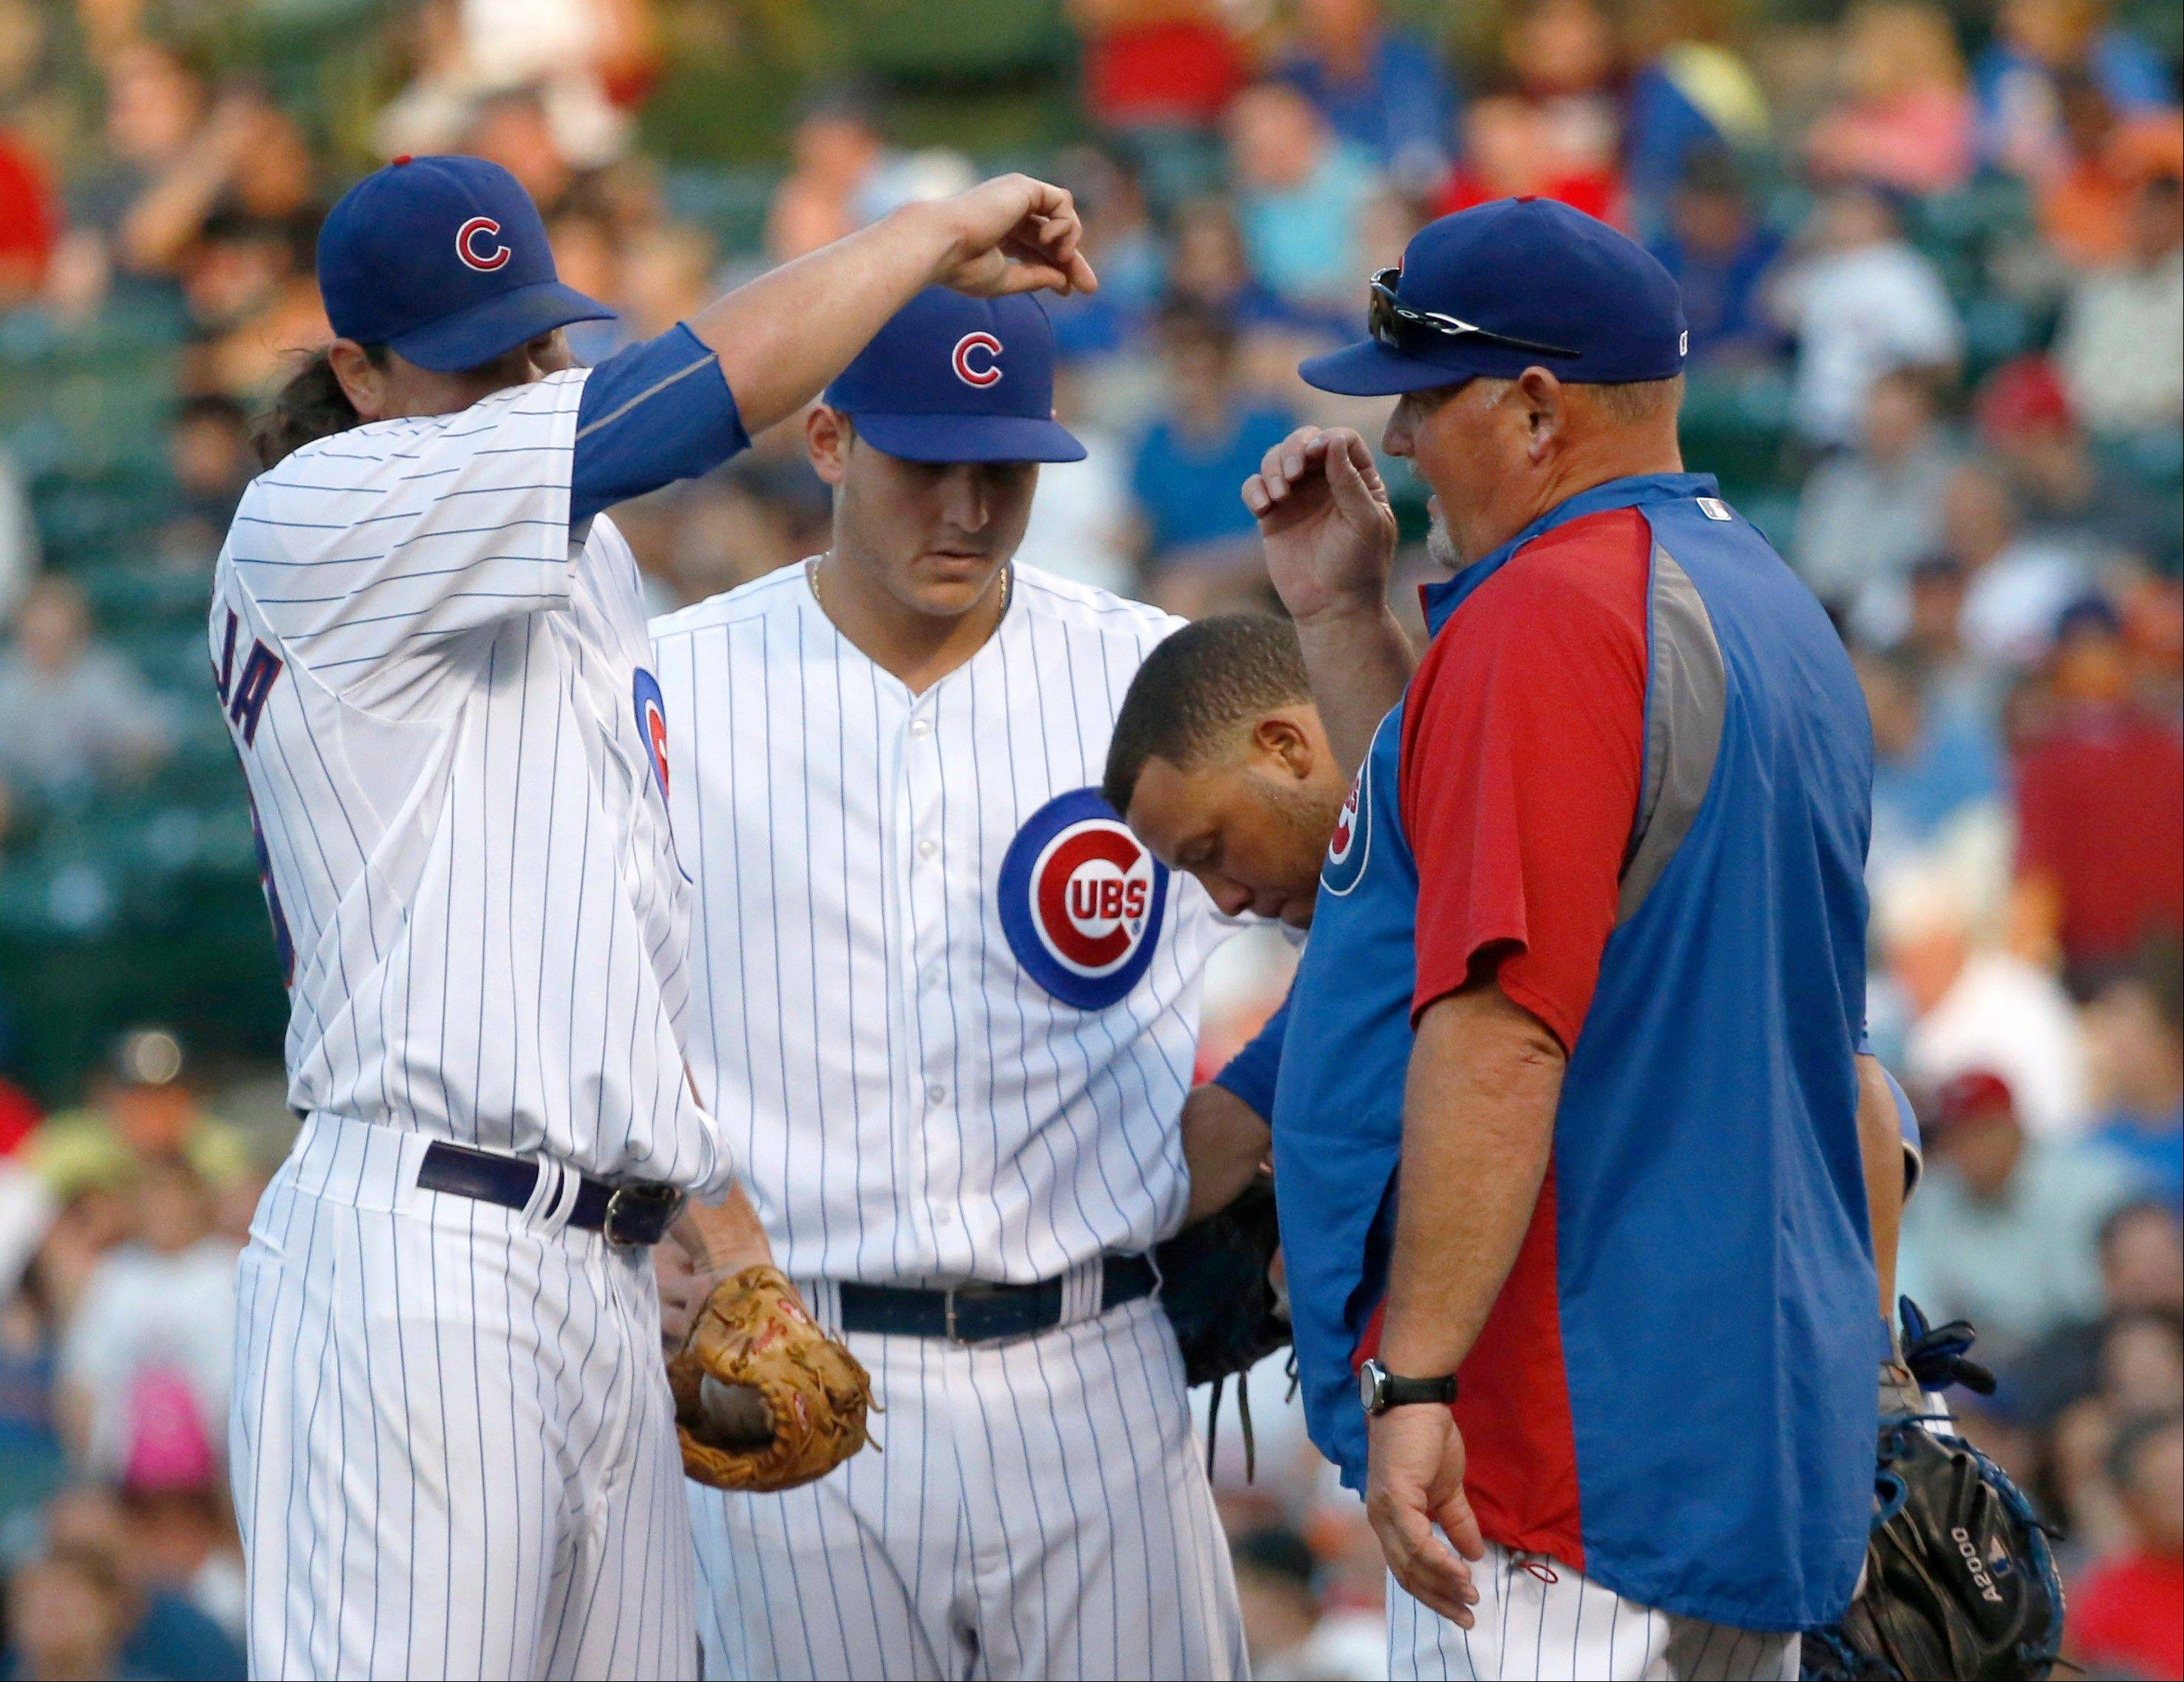 Cubs starting pitcher Jeff Samardzija, left, wipes the sweat from his face as he listens to pitching coach Chris Bosio, right, with first baseman Anthony Rizzo and catcher Welington Castillo joining them at the mound during Wednesday's first inning at Wrigley Field.